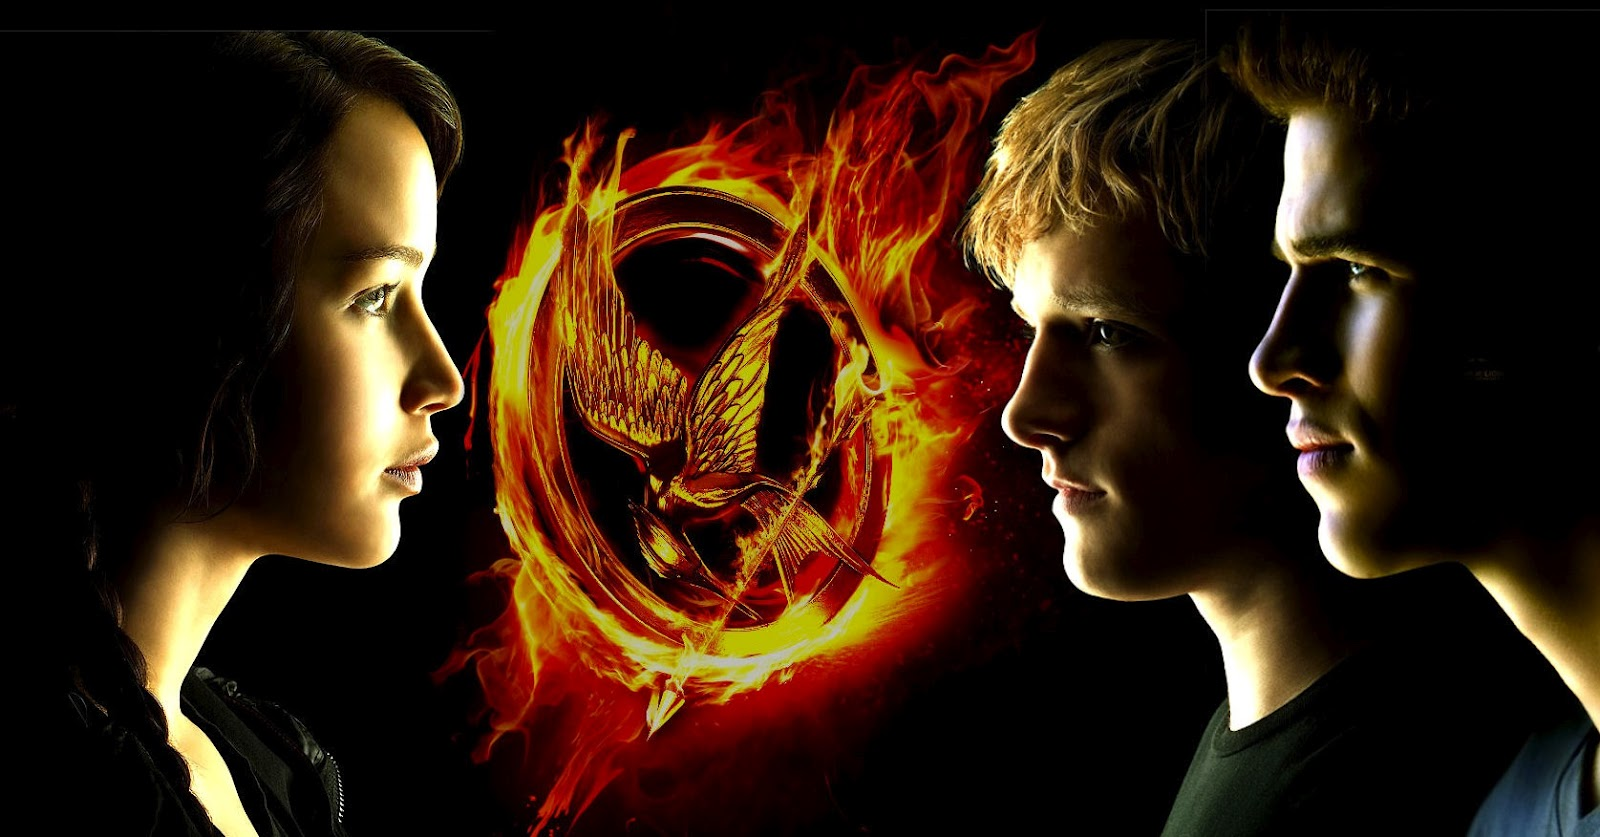 Film The Hunger Games Catching Fire The Verbal Spew Review